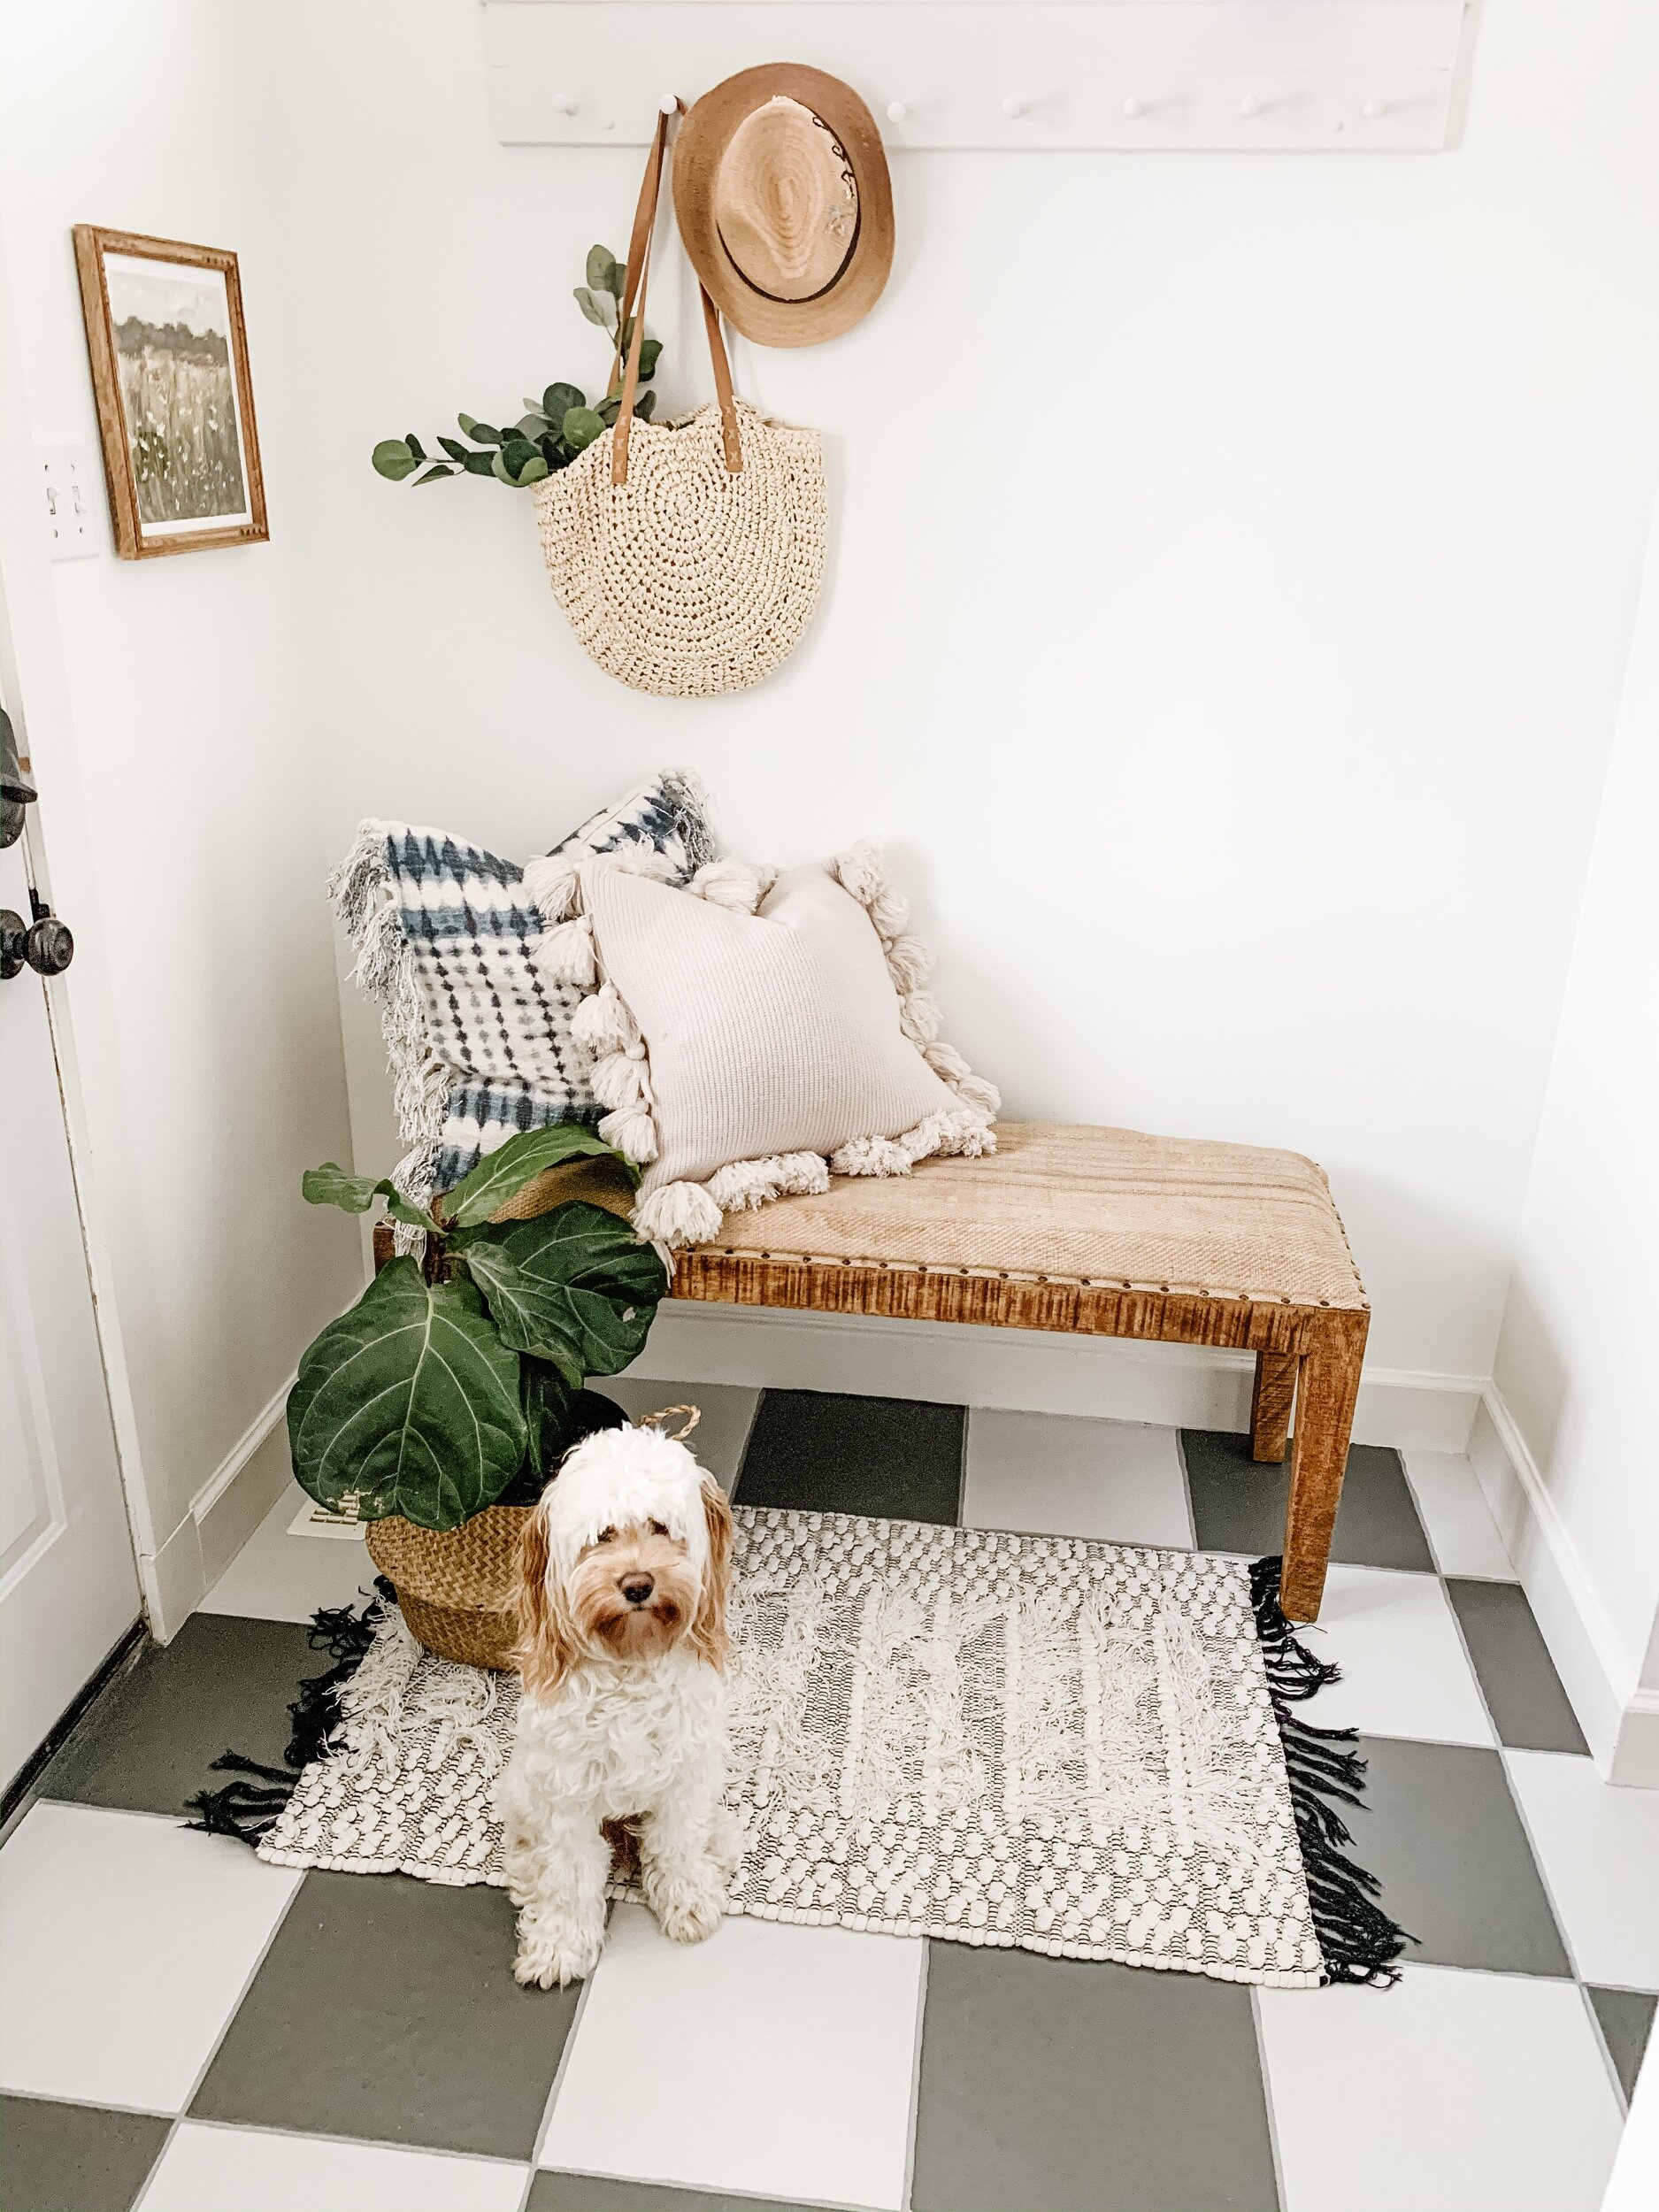 this is a photo of a dog on a rug in a back entryway with painted tile floors